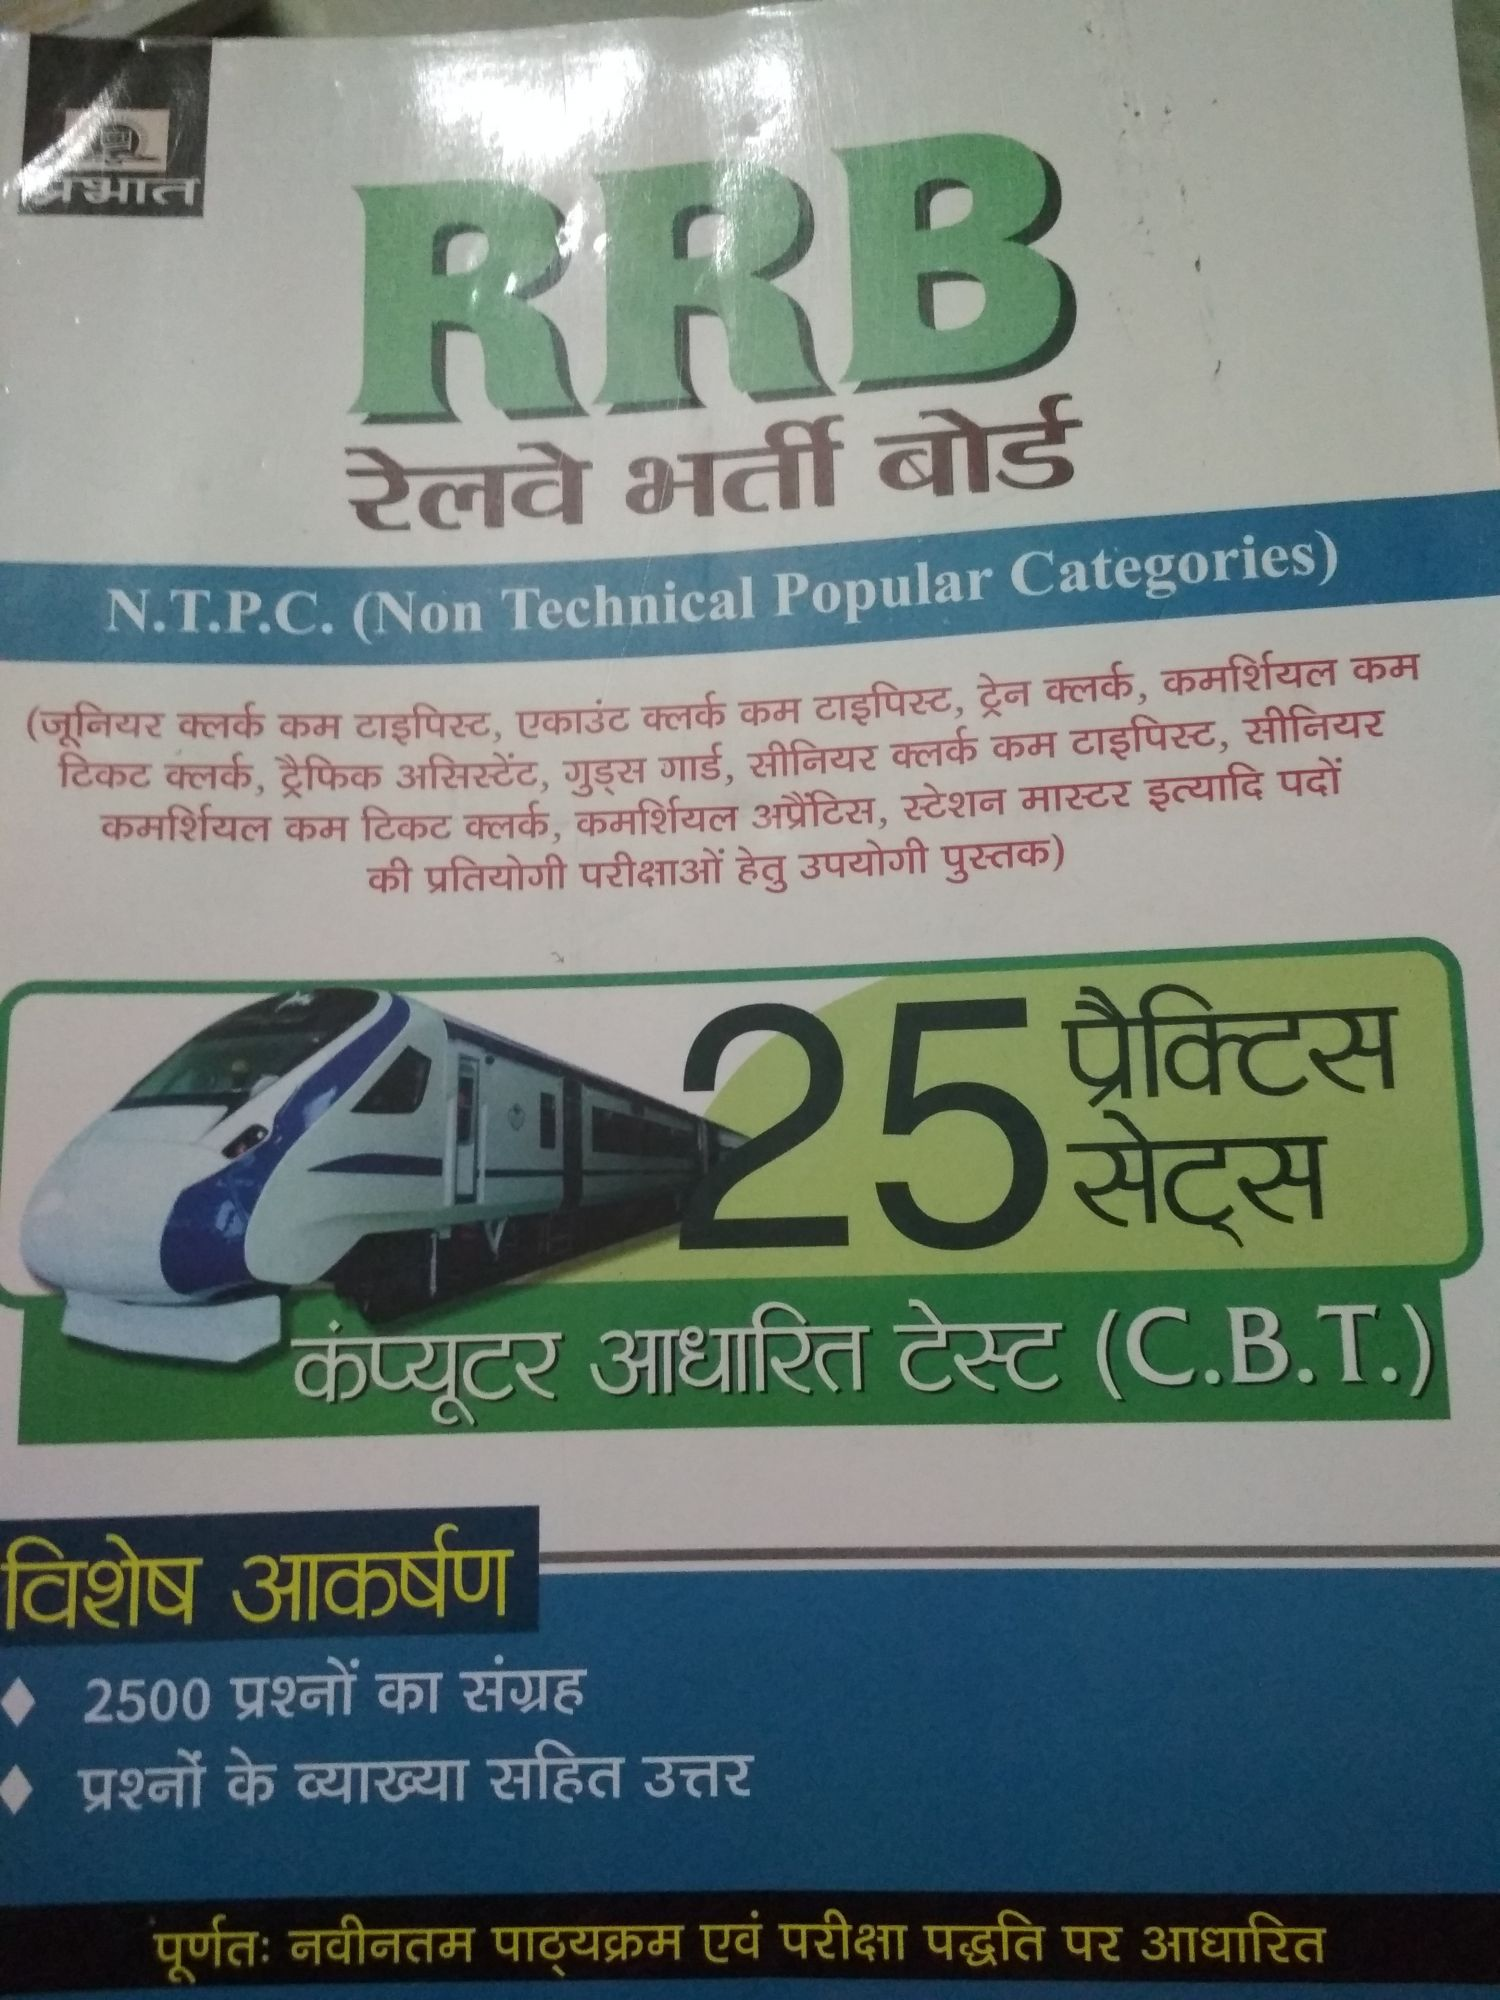 RRB N.T.P.C. 25 PRACTICE TEST RAILWAY BOOK  in hindi medium